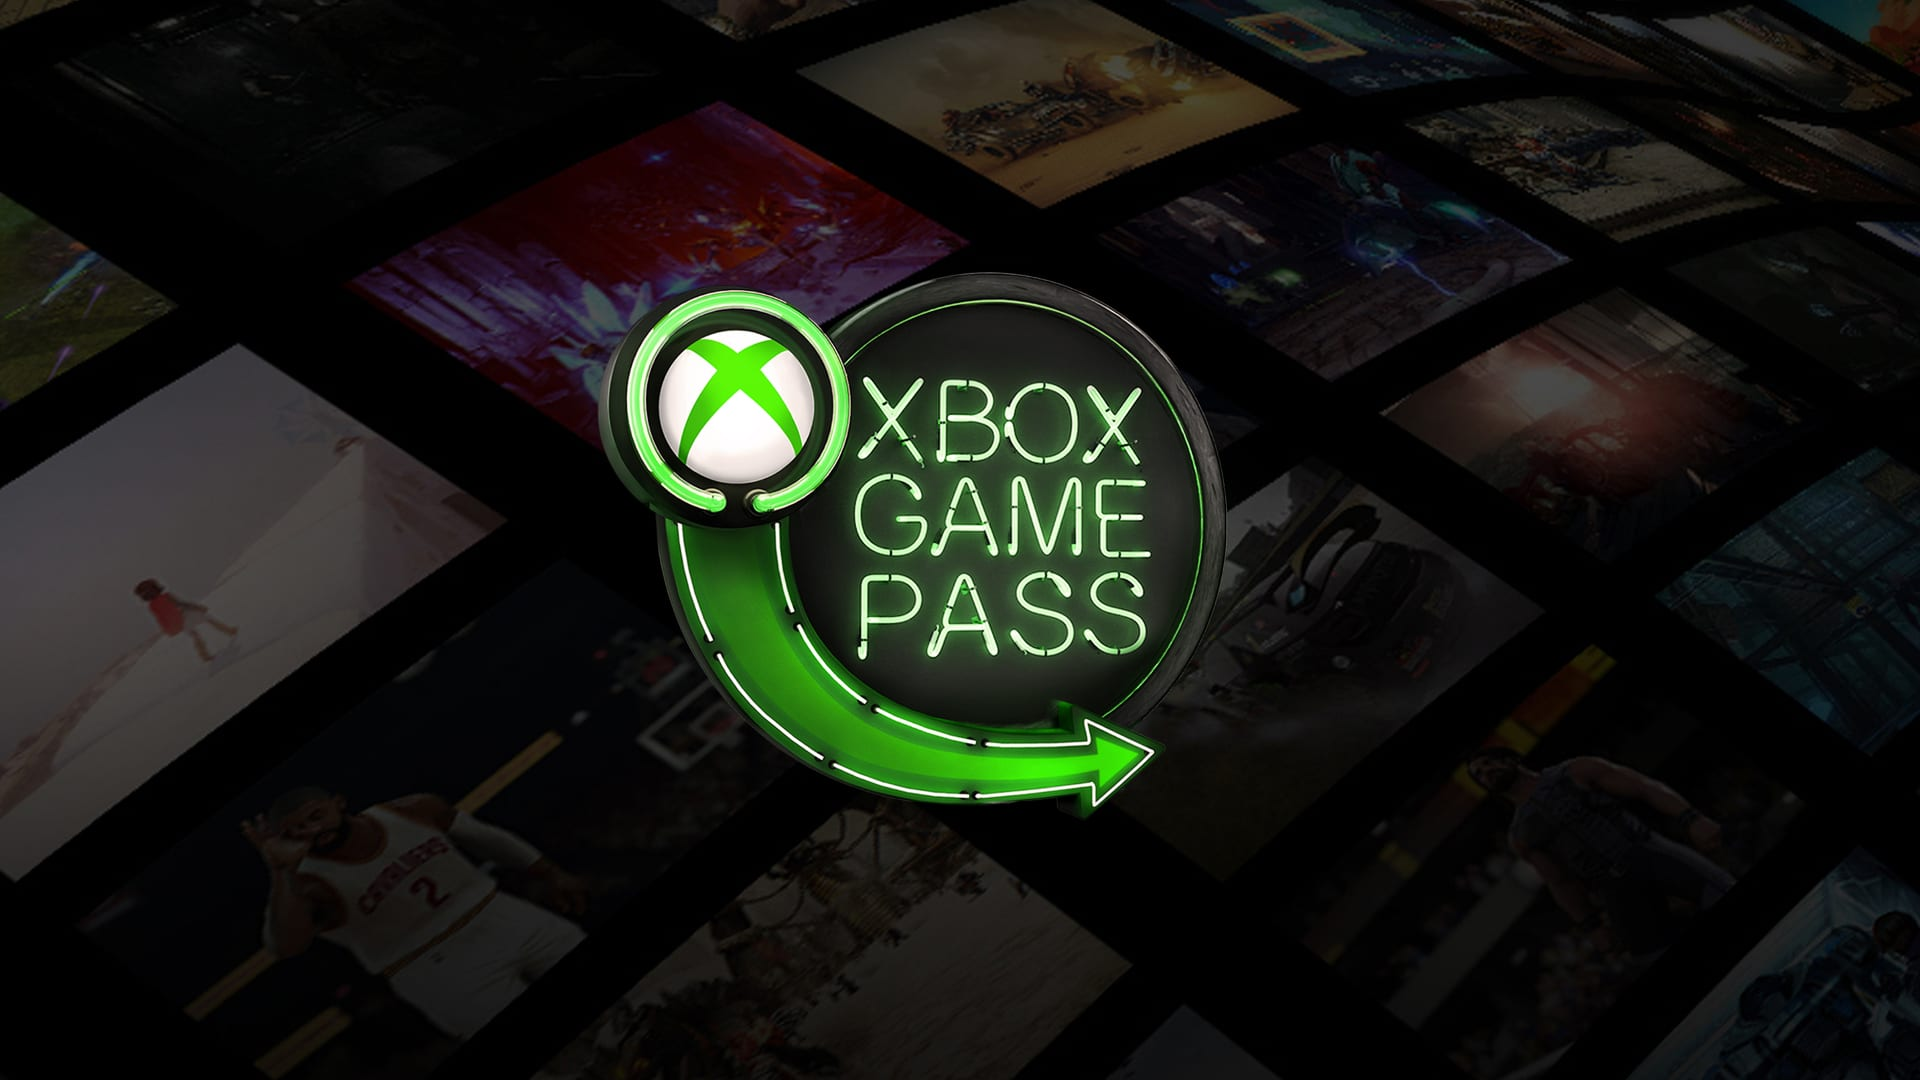 Xbox game pass reel